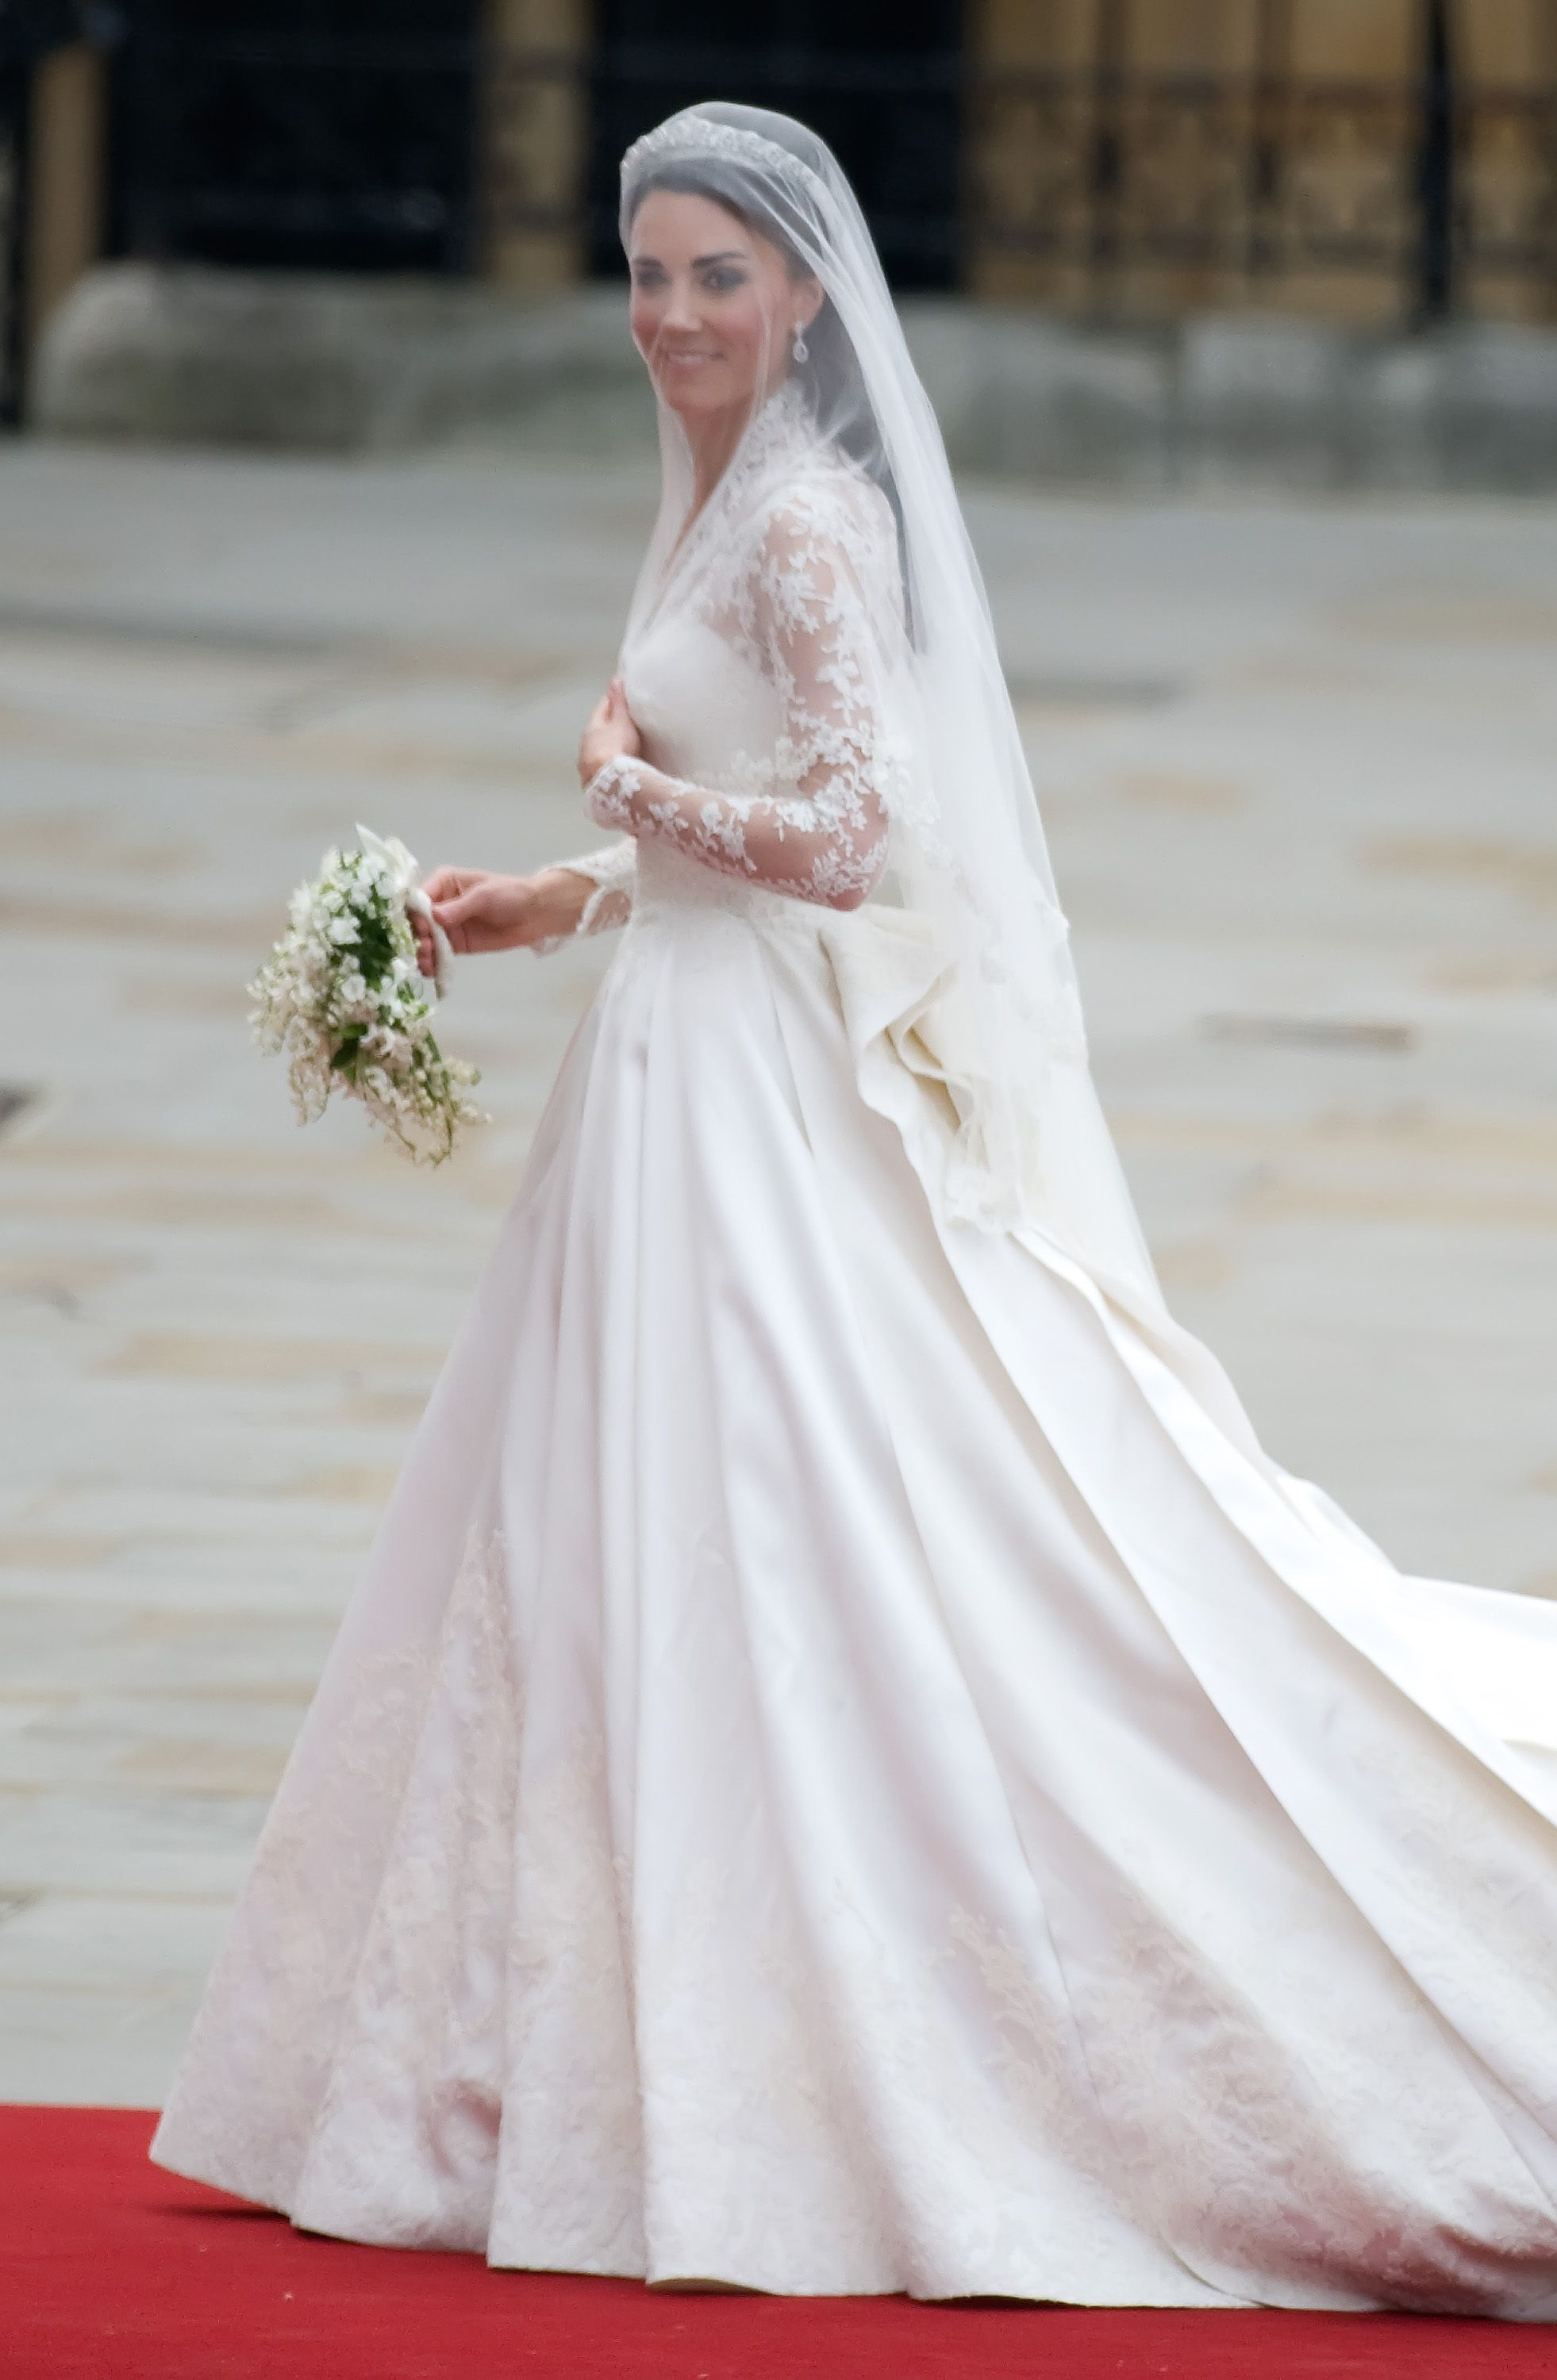 Kate Middleton\'s wedding dress | Pinterest | Kate middleton, Wedding ...